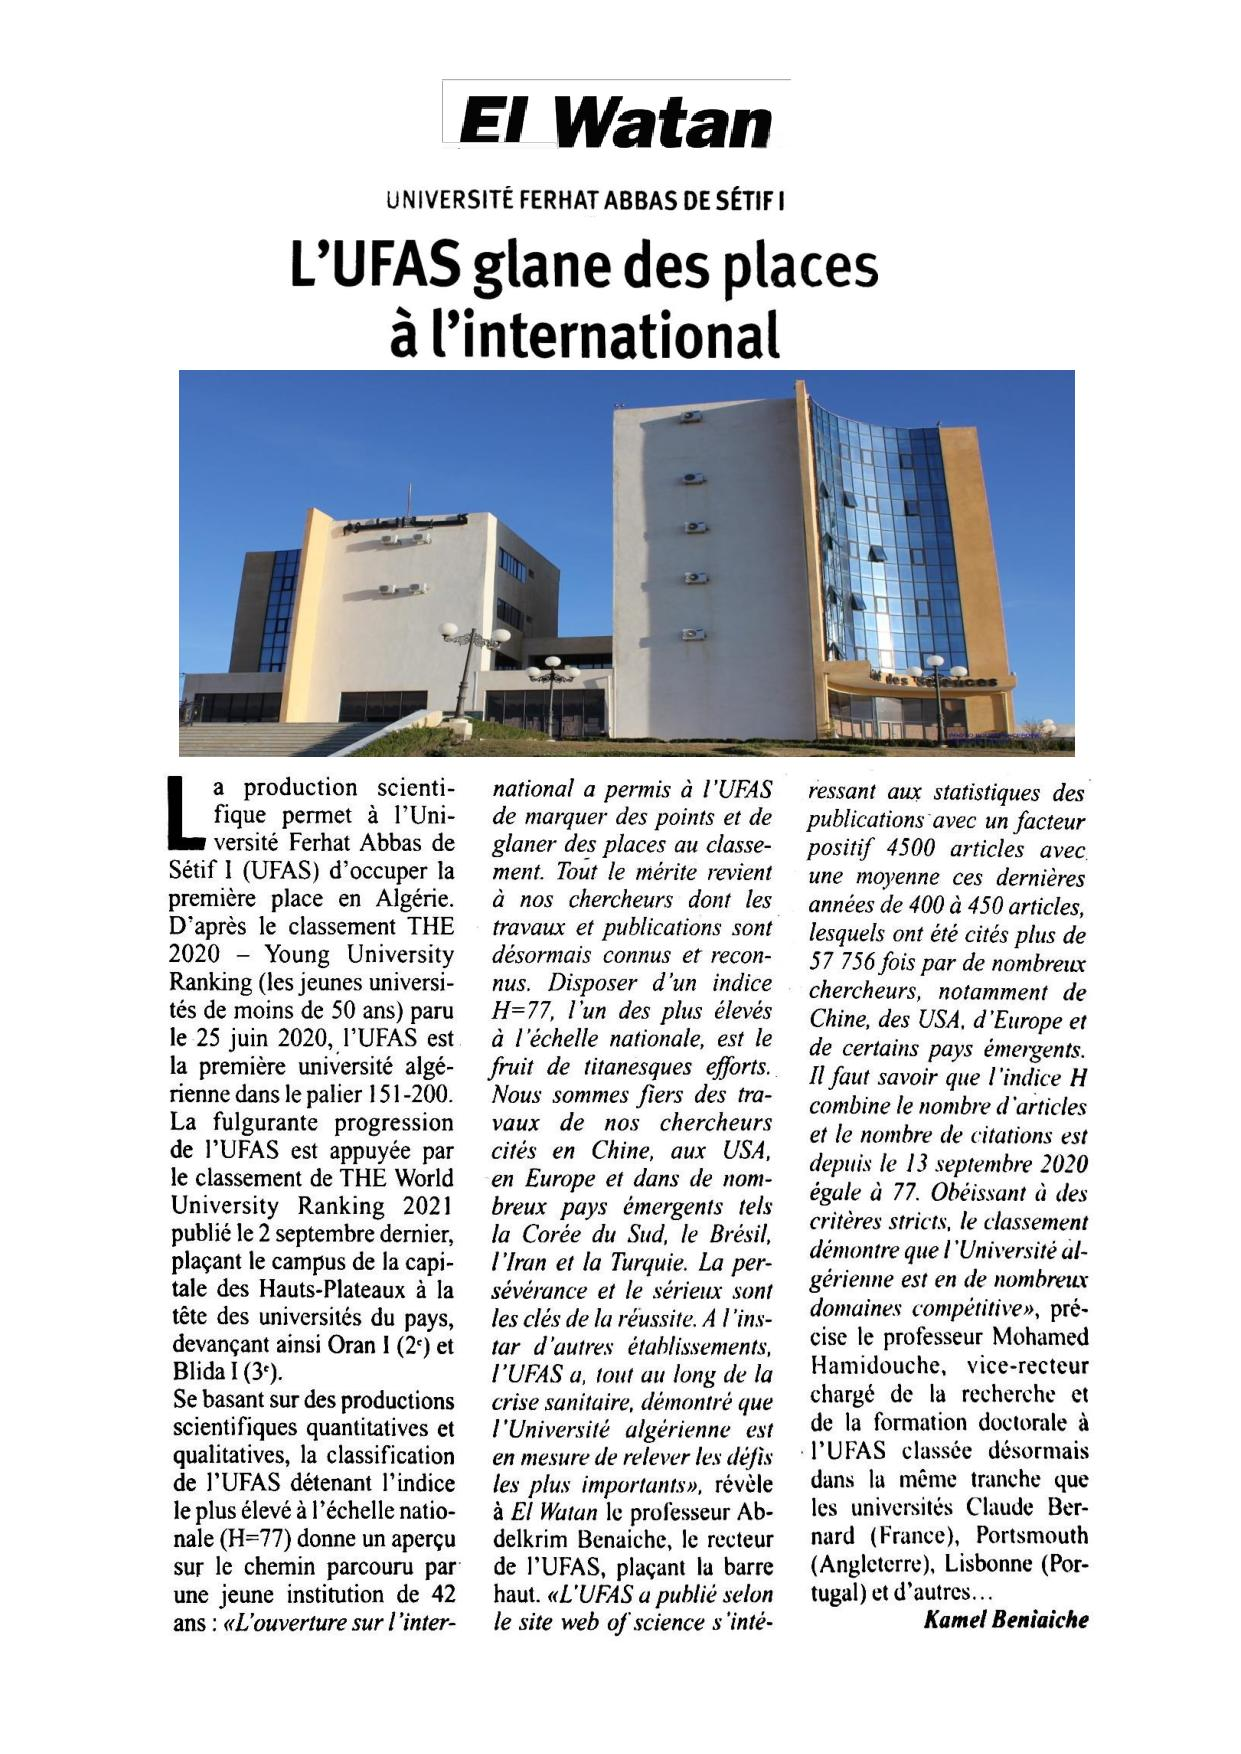 El Watan newspaper: UFAS1 is gaining places at an international level